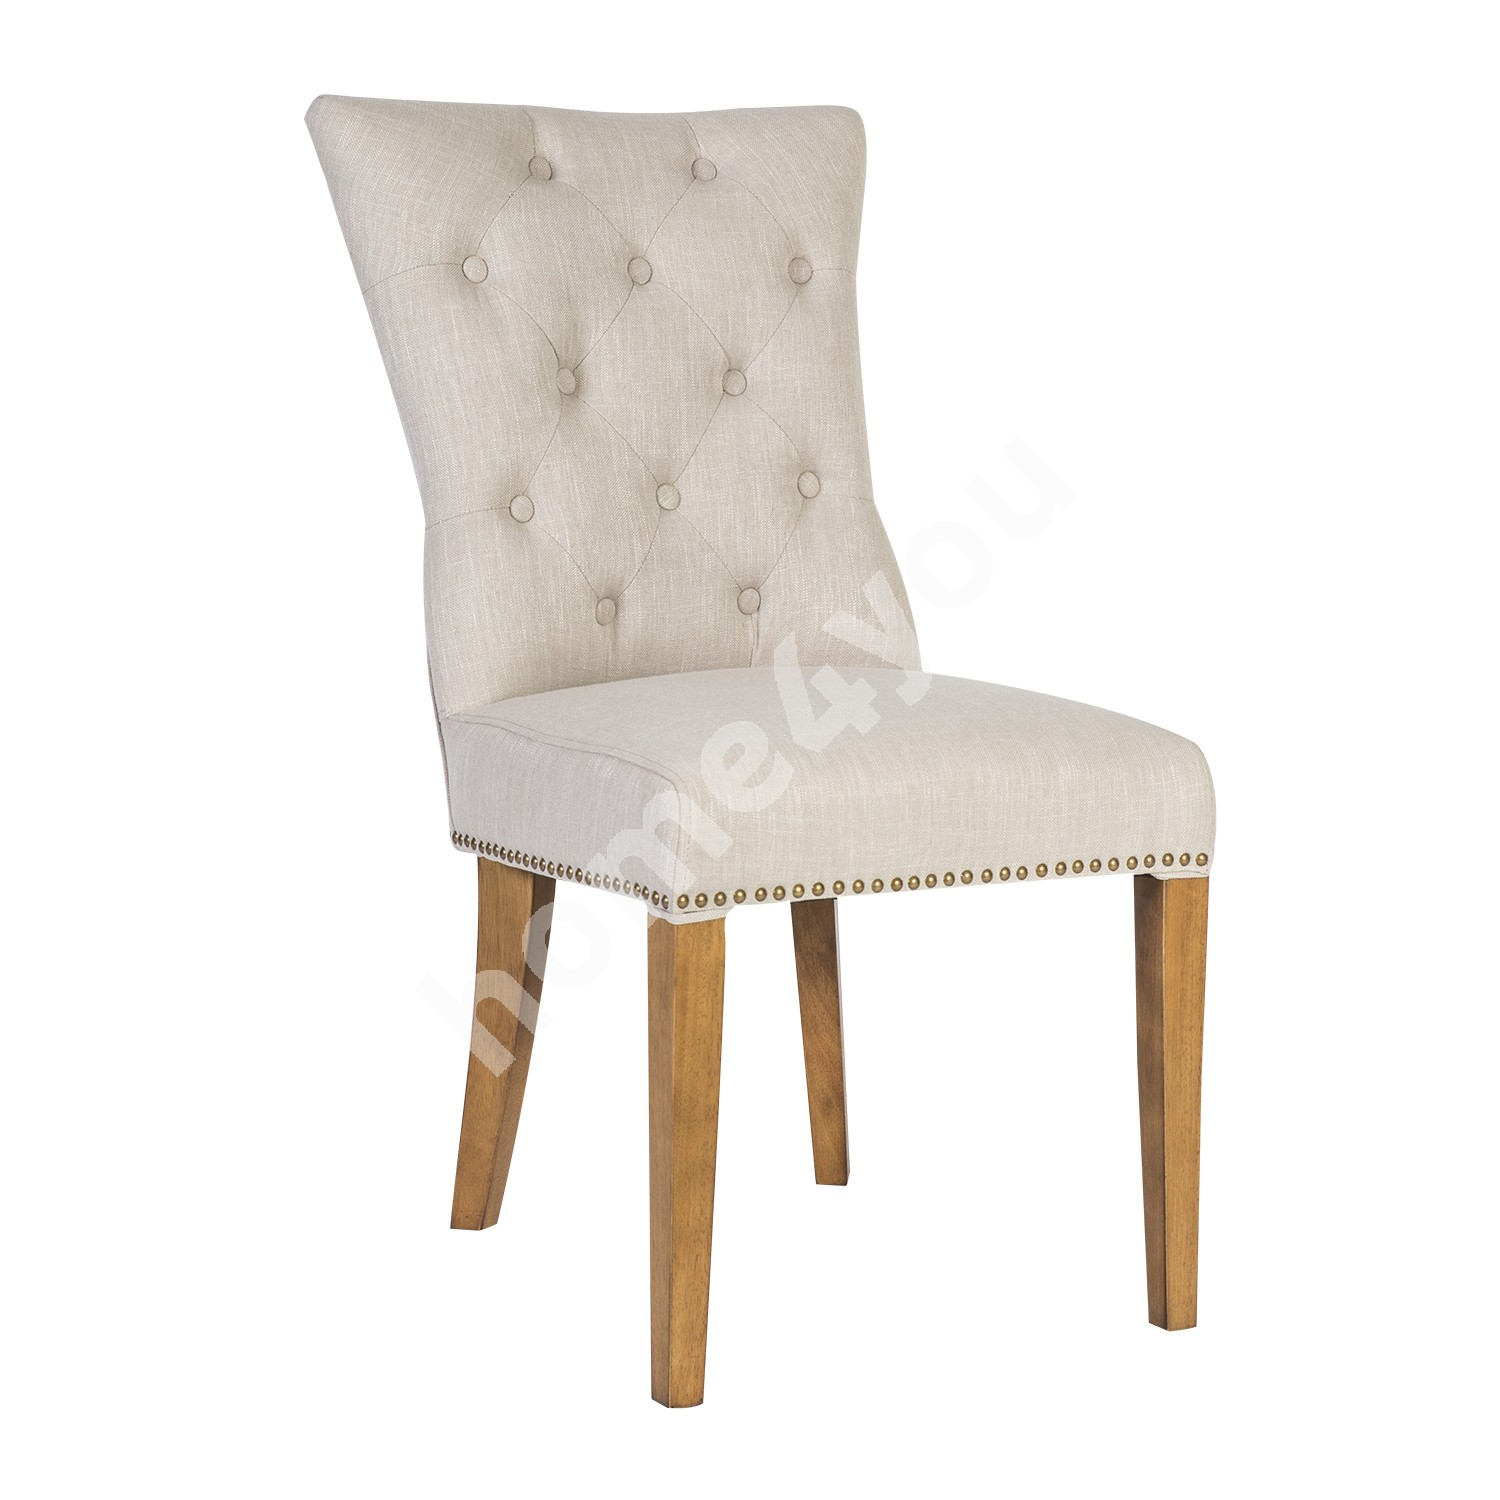 Chair HOLMES 55x68xH99cm, cover material: fabric, color: beige